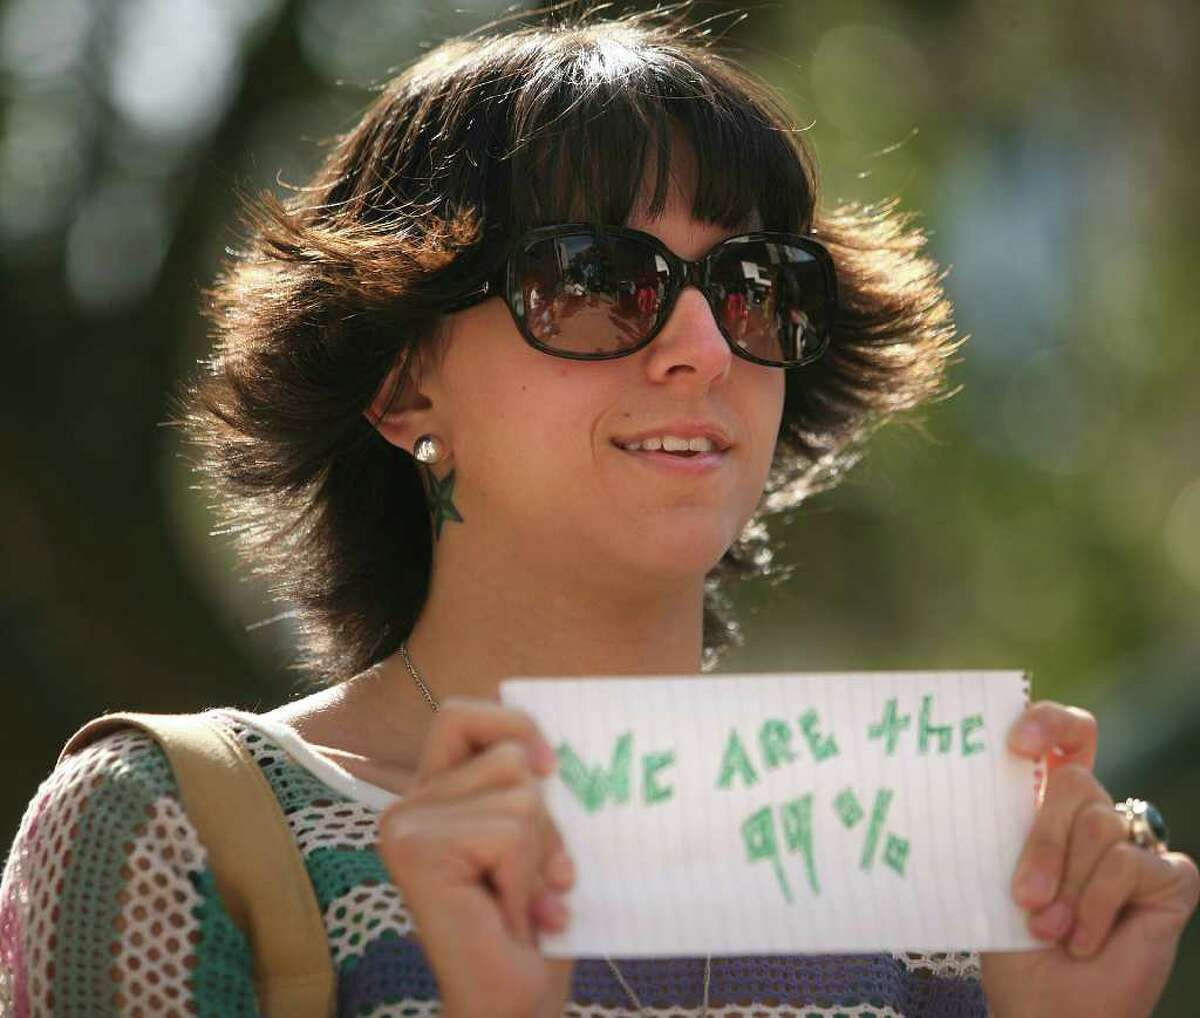 Ashley Jade of Bridgeport holds up a sign during an Occupy Wall Street type protest outside 10 Middle Street in downtown Bridgeport on Tuesday, October 11, 2011.